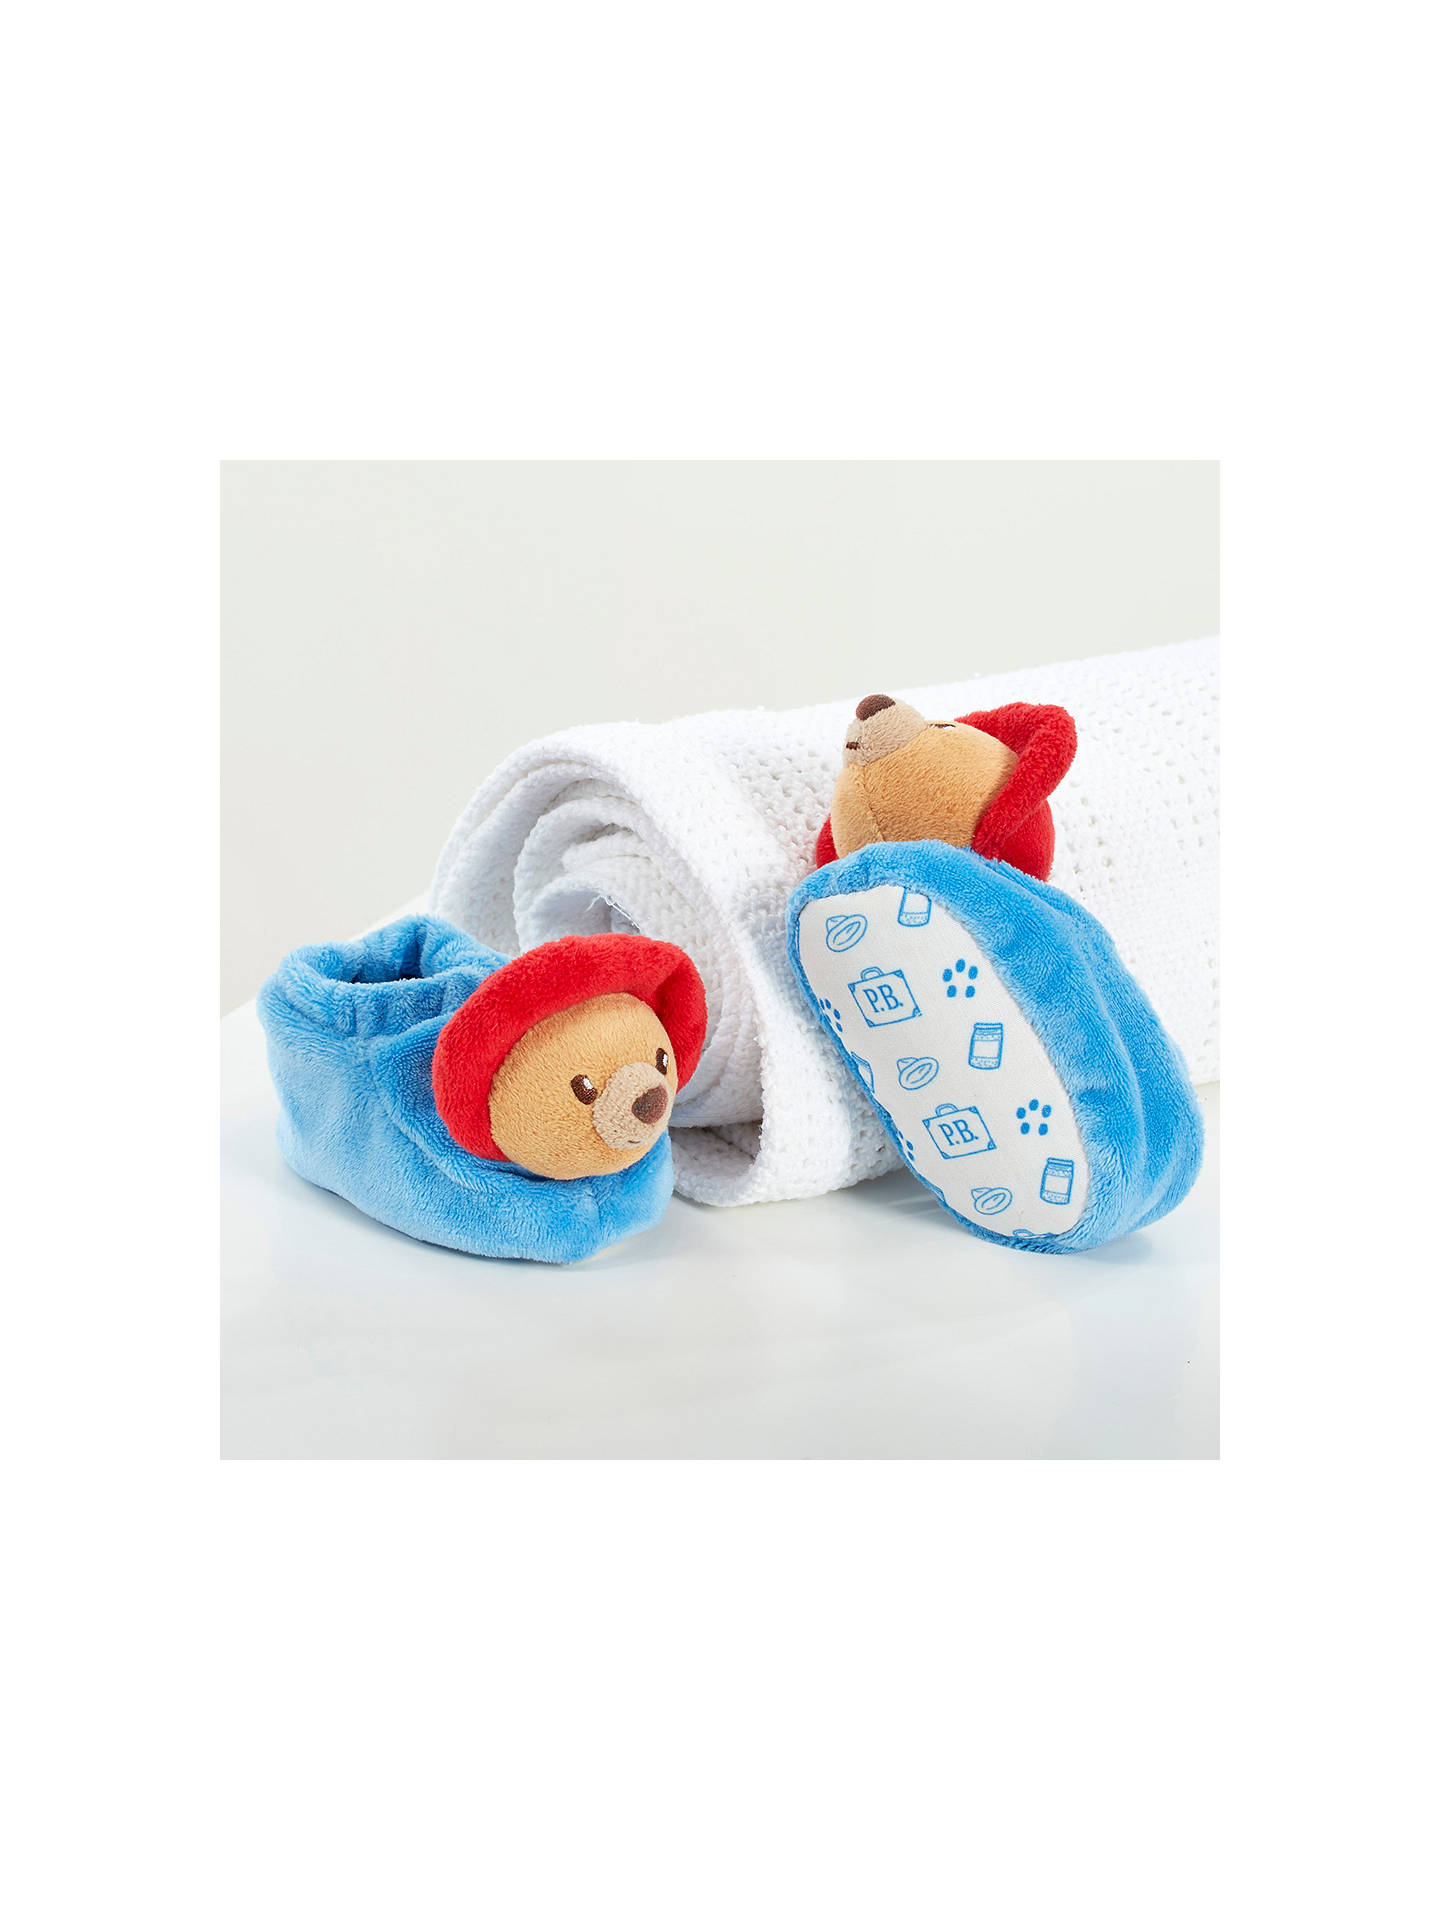 BuyRainbow Designs Paddington Baby Booties Online at johnlewis.com